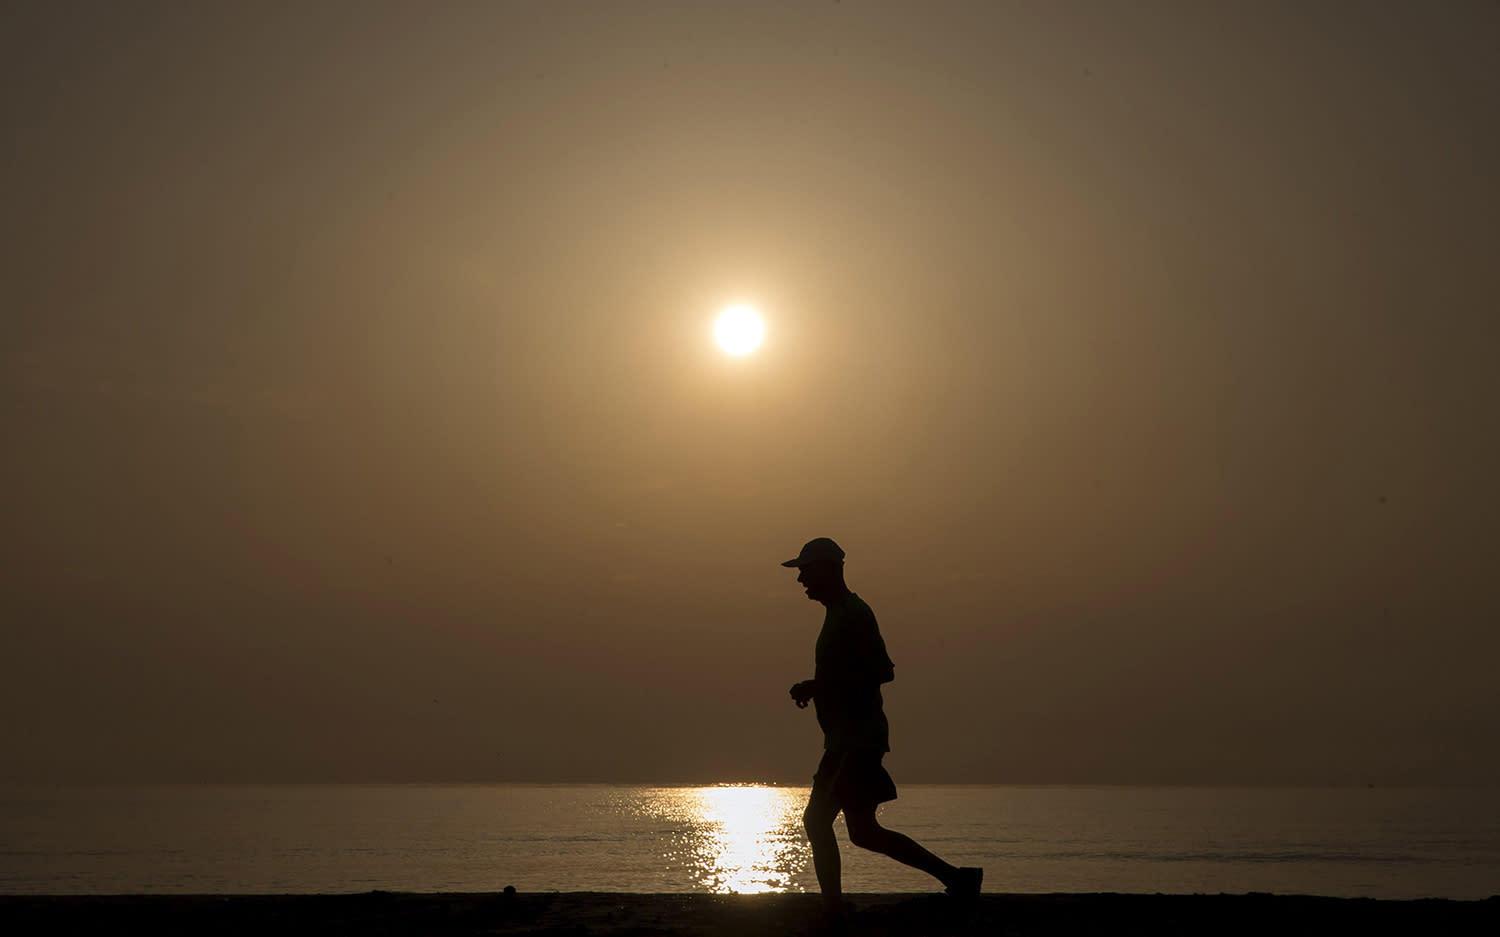 <p>A man jogs during dawn at the beach of la Malvarrosa, Valencia, eastern Spain, April 14, 2017. (Photo: Kai Foersterling/EPA) </p>